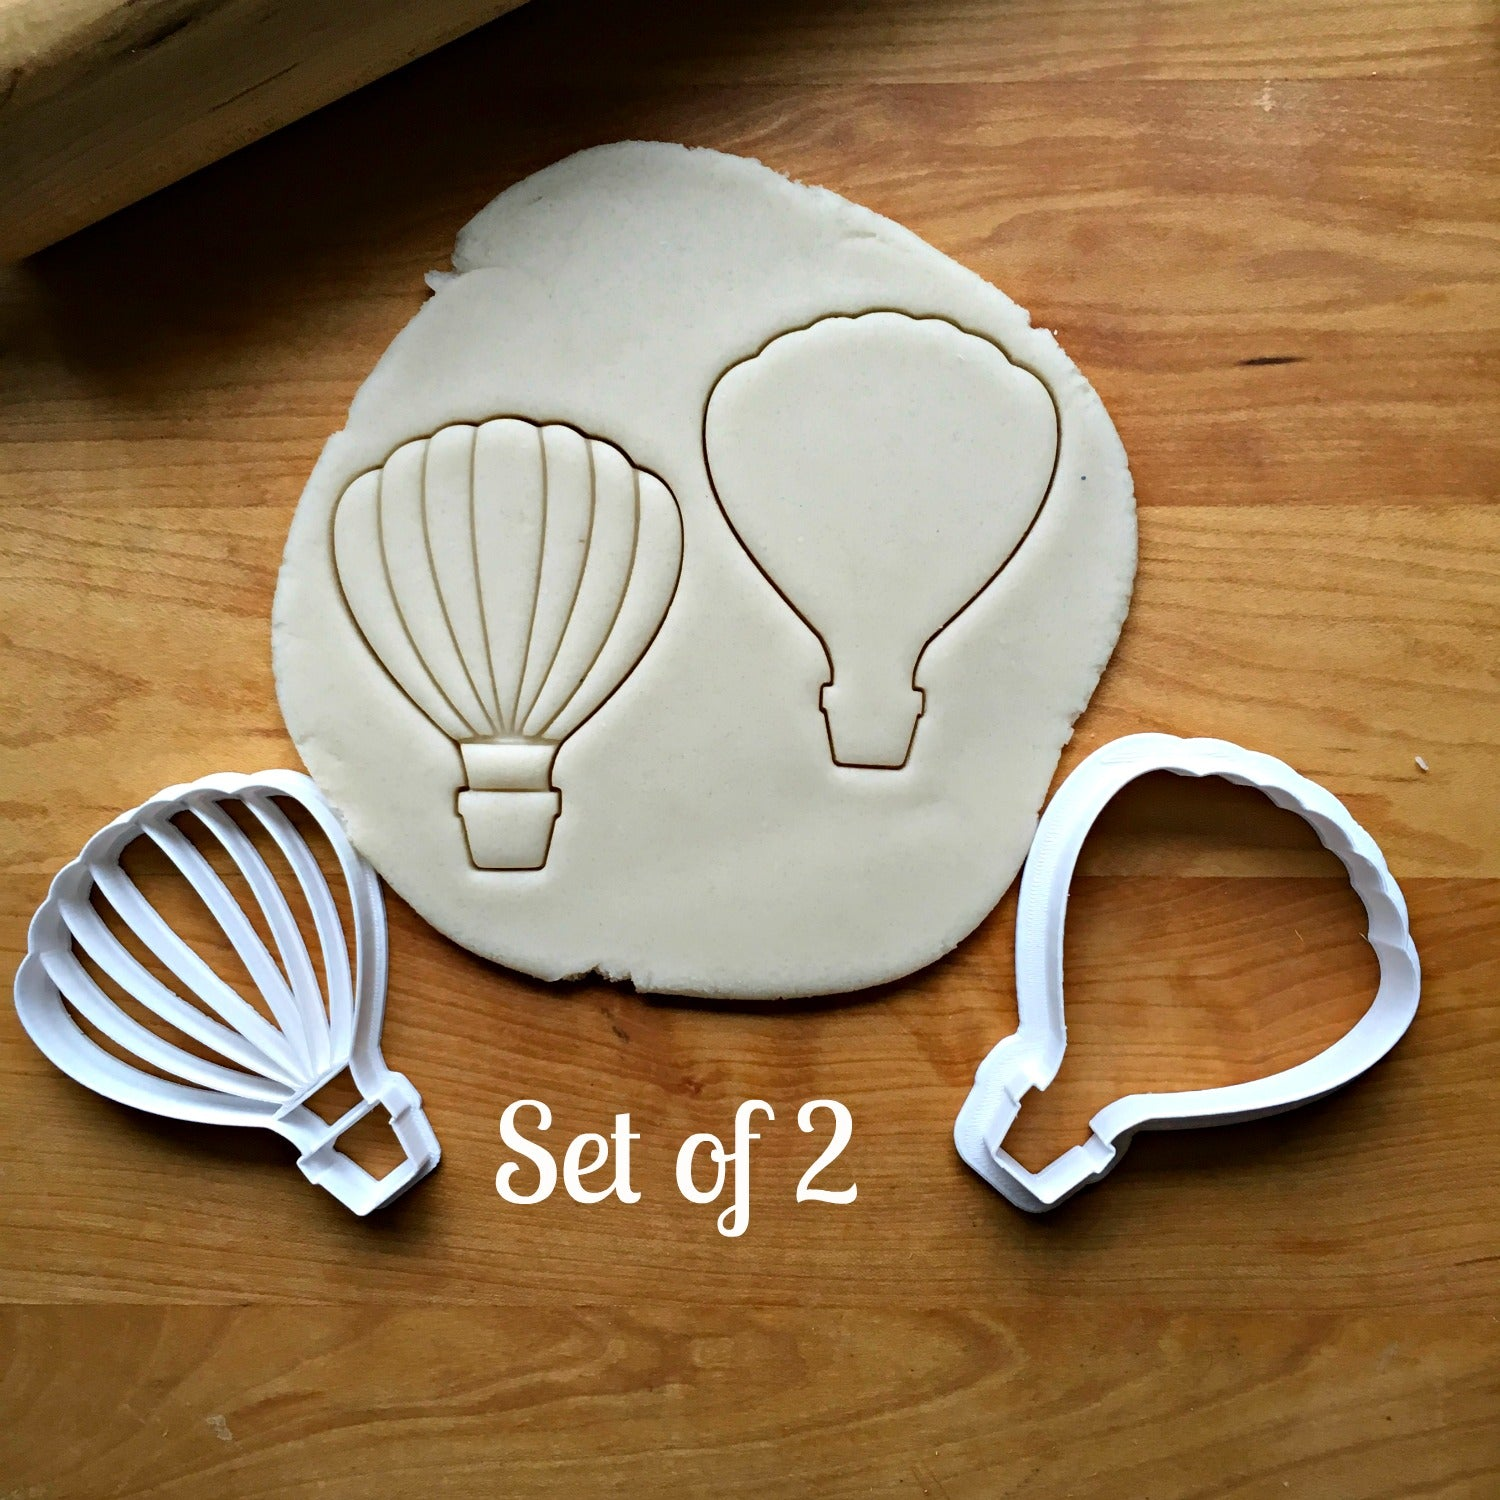 Set of 2 Hot Air Balloon Cookie Cutters/Multi-Size/Dishwasher Safe